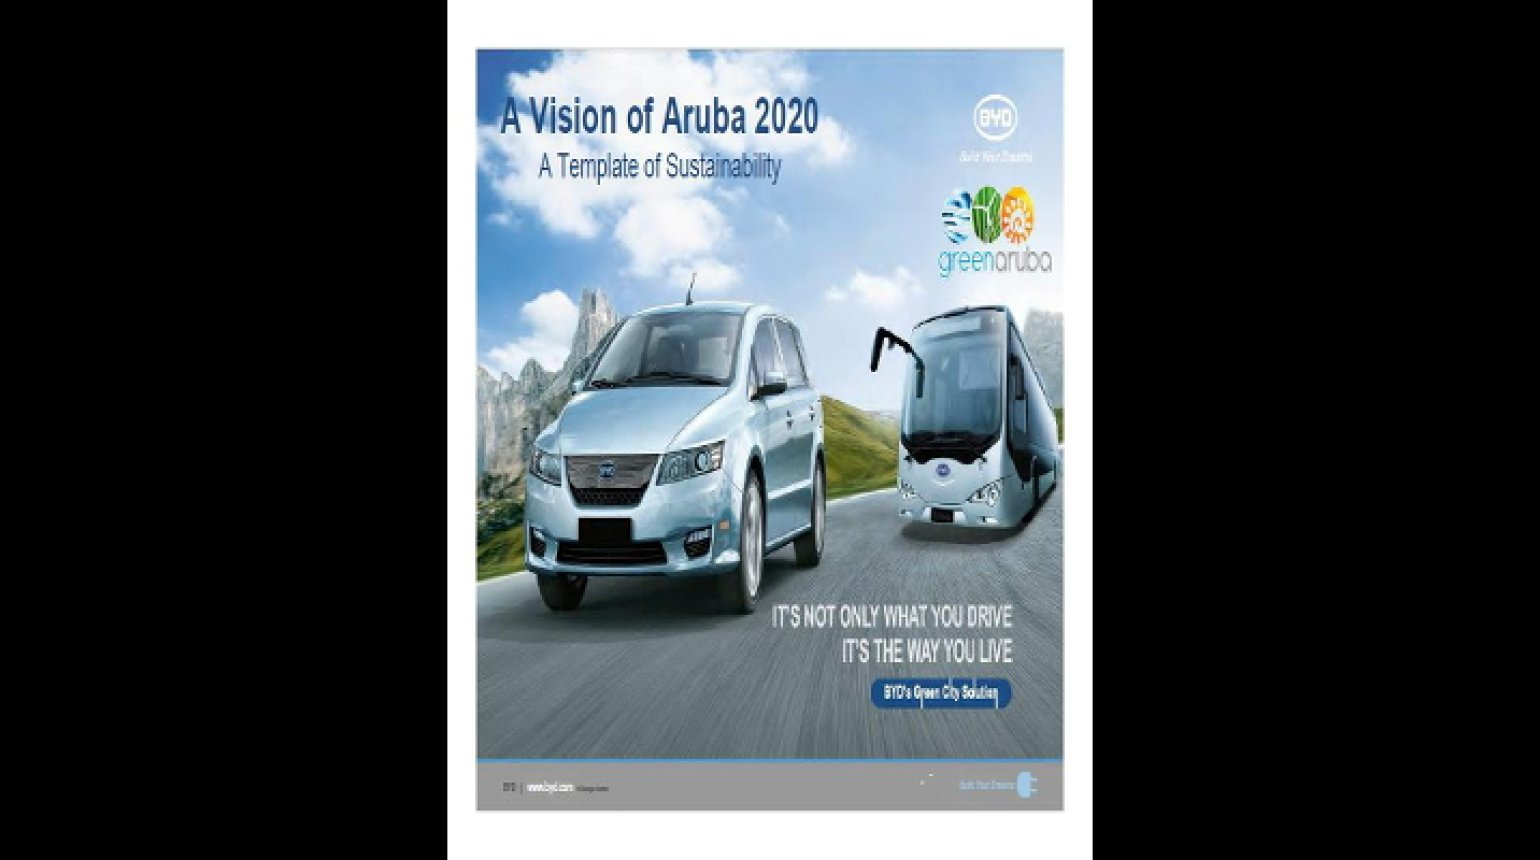 Video - A Vision of Aruba 2020, A Template for Sustainability